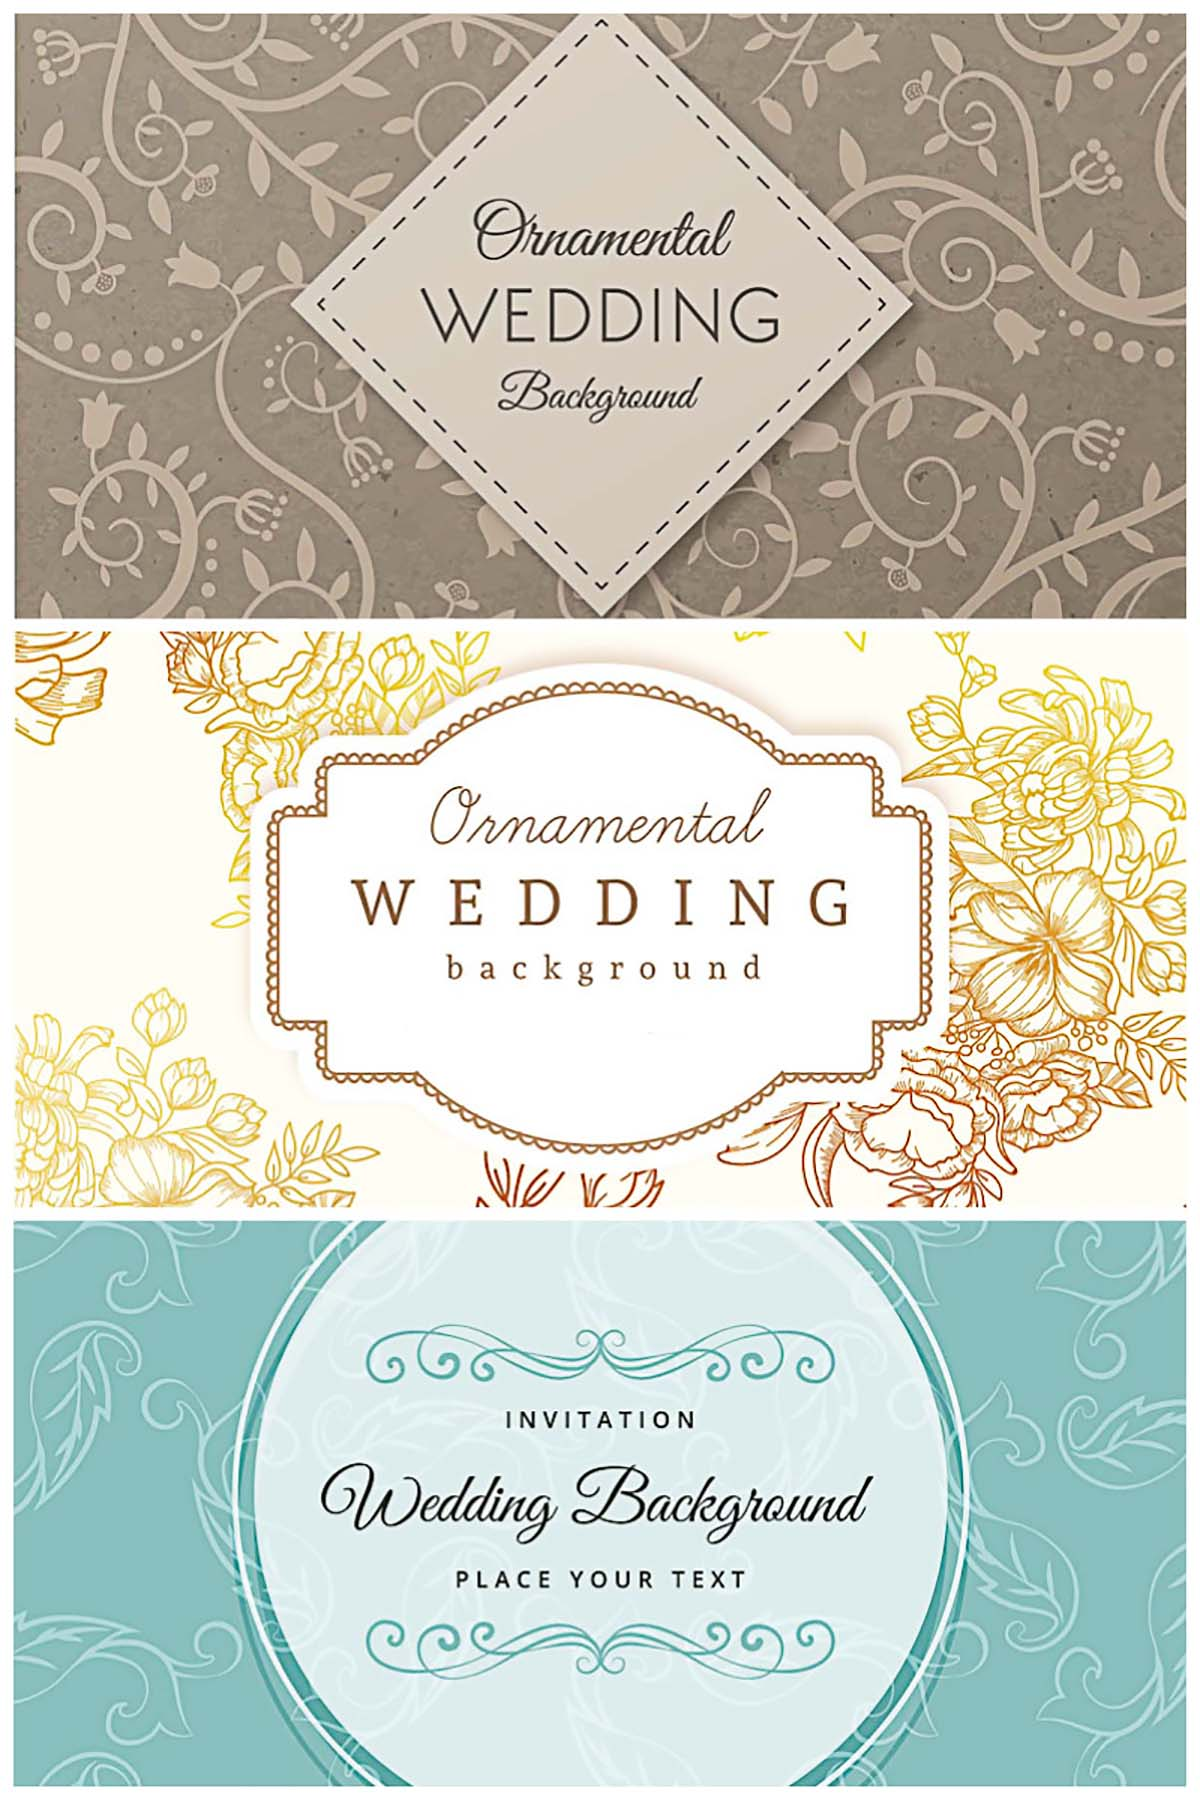 Chic ornamental wedding invitations free vector card